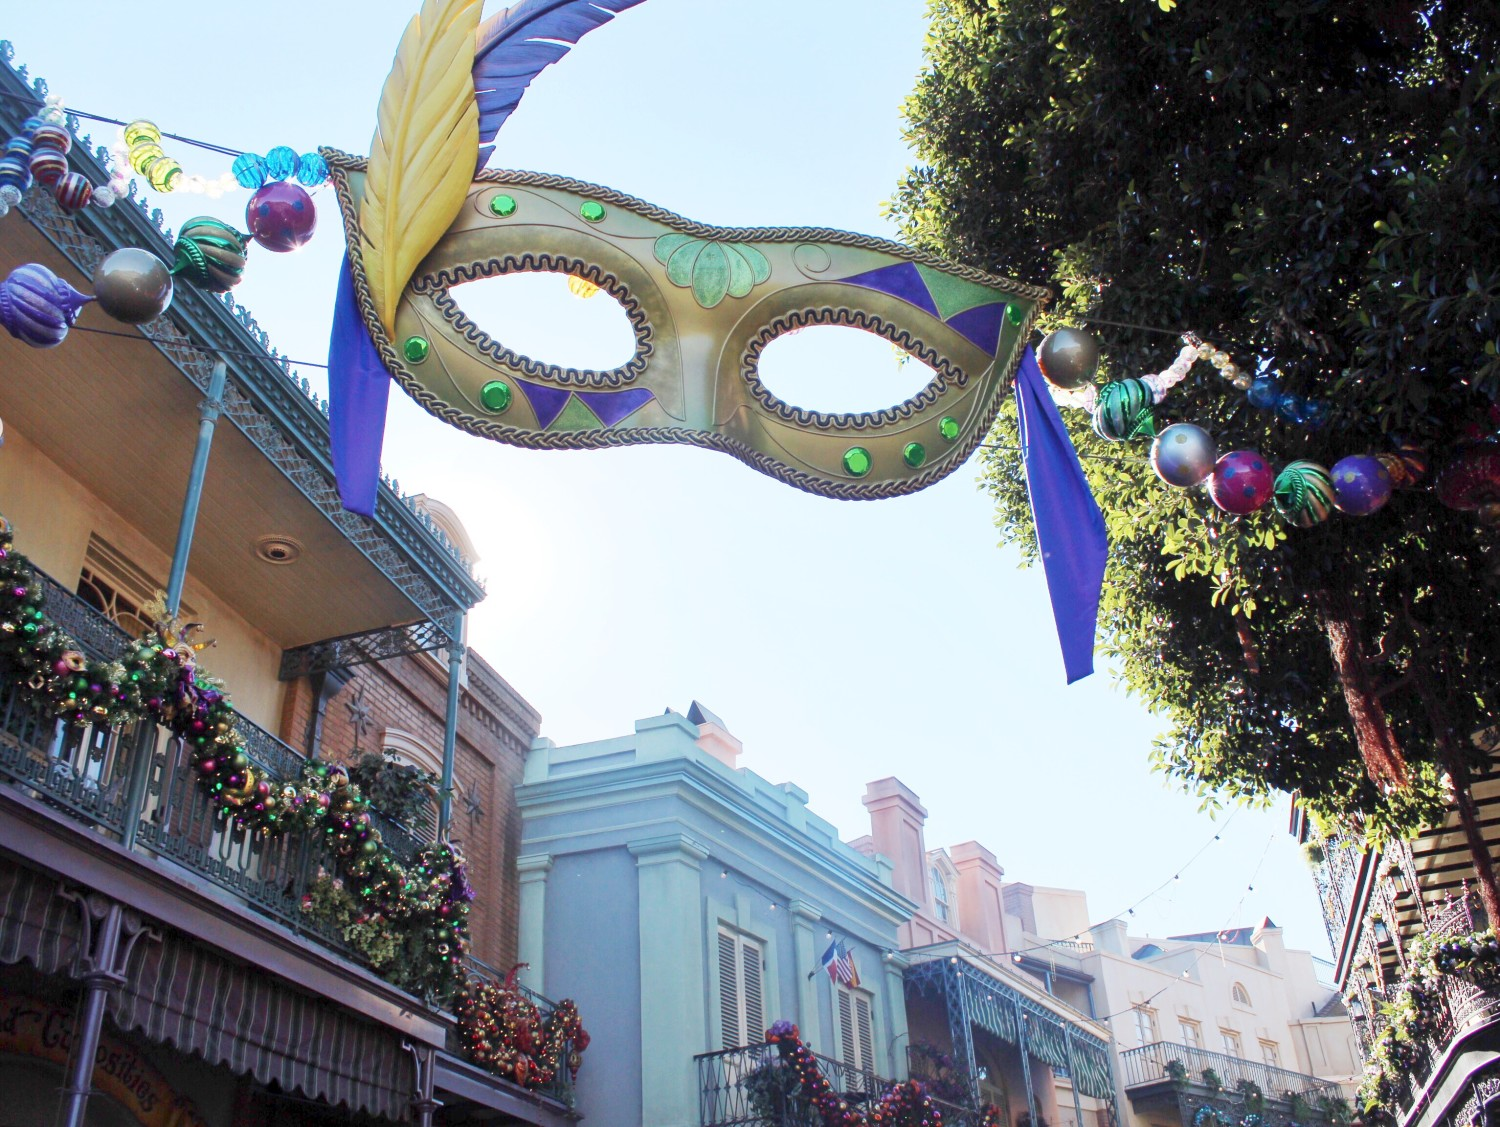 Disneyland New Orleans Square During the Holidays